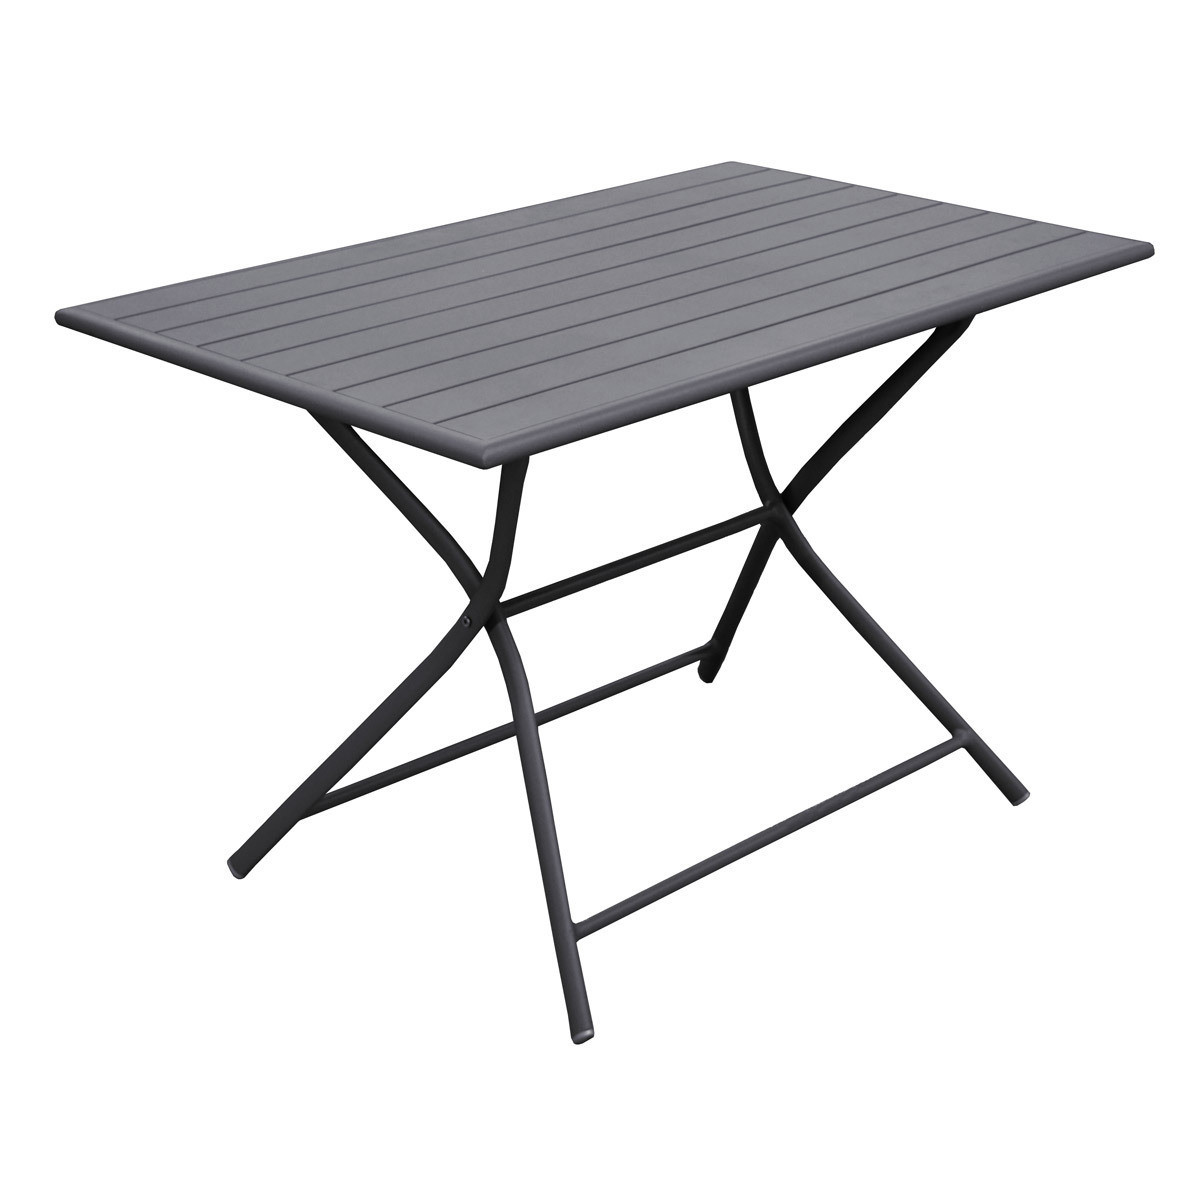 Table de jardin pliante rectangulaire Logia | Mambhome